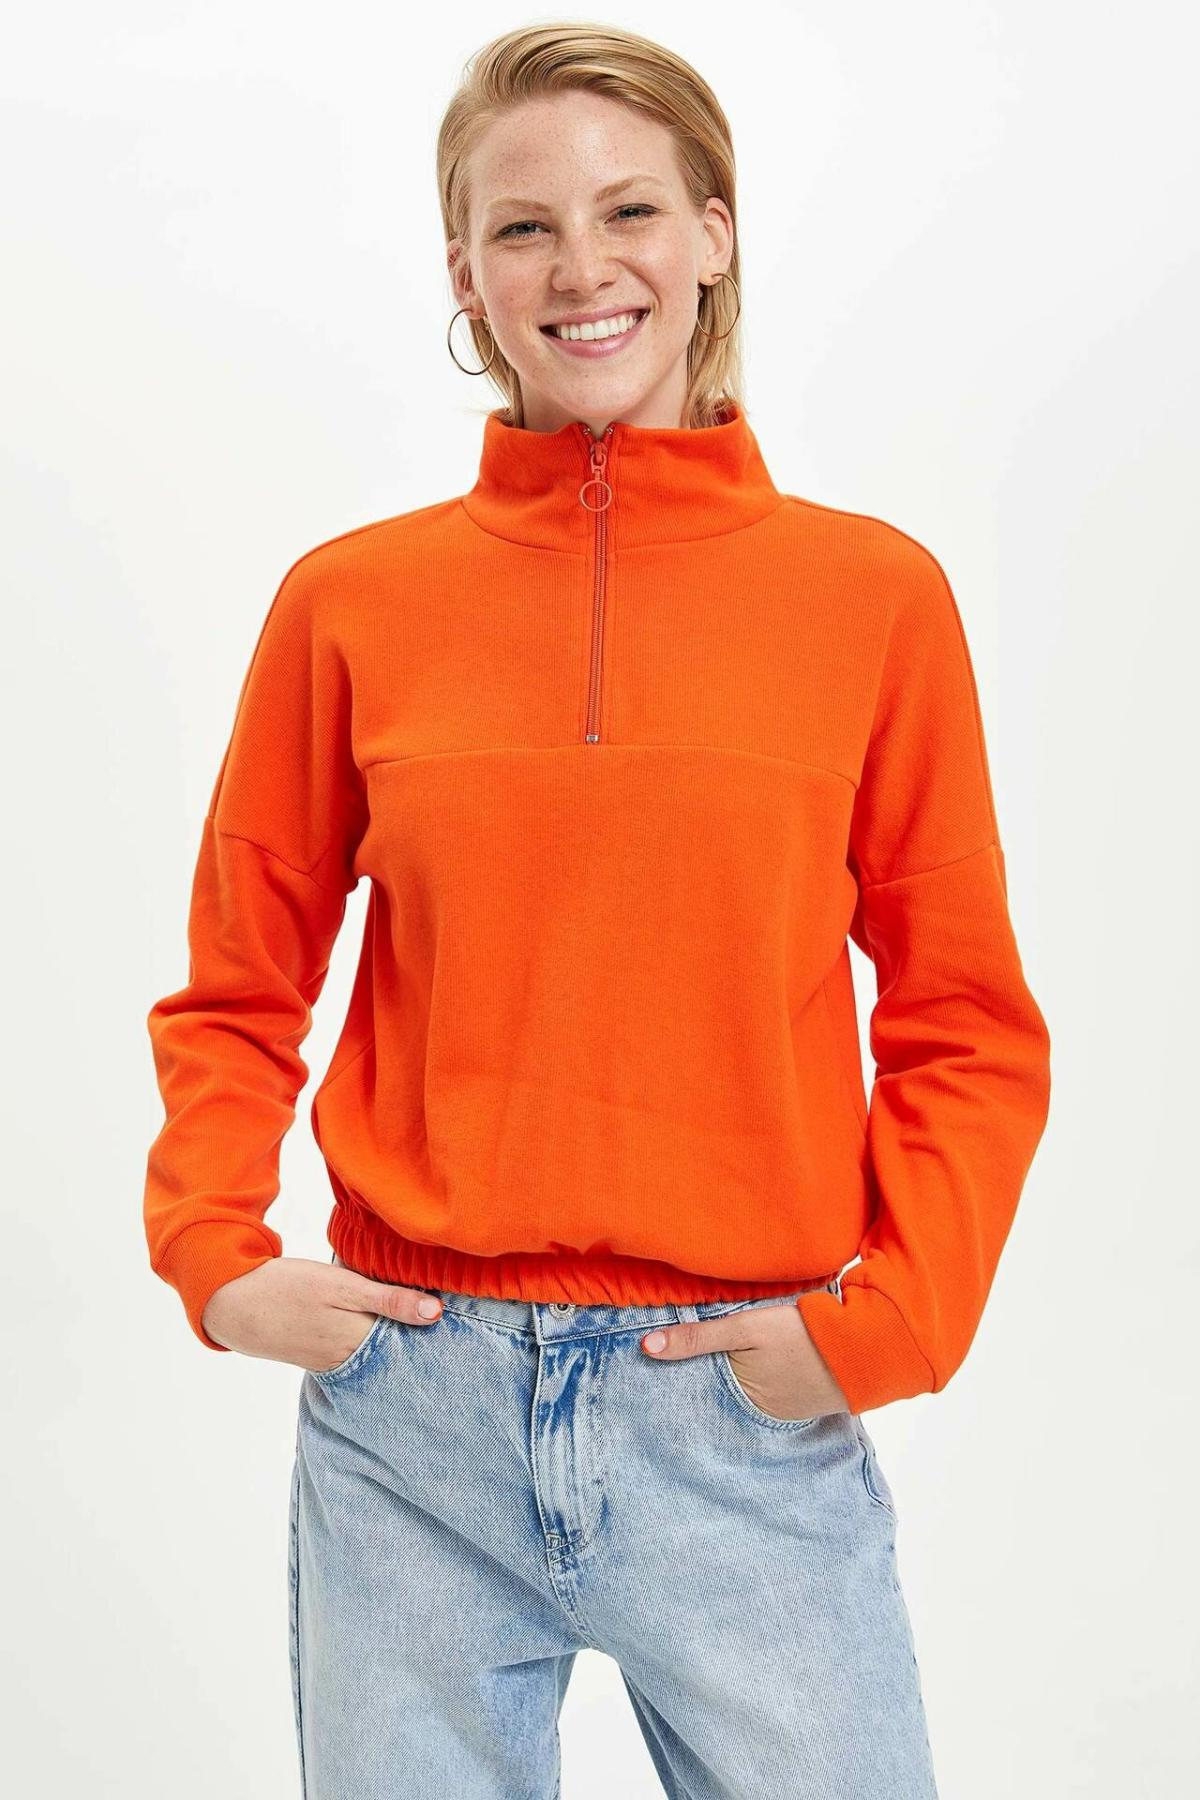 DeFacto Hoodies Orange Women Stand Collar Thin Zip Striped Loose Leisure Sweatshirts Women Simple Joker Pullovers-L3489AZ19AU